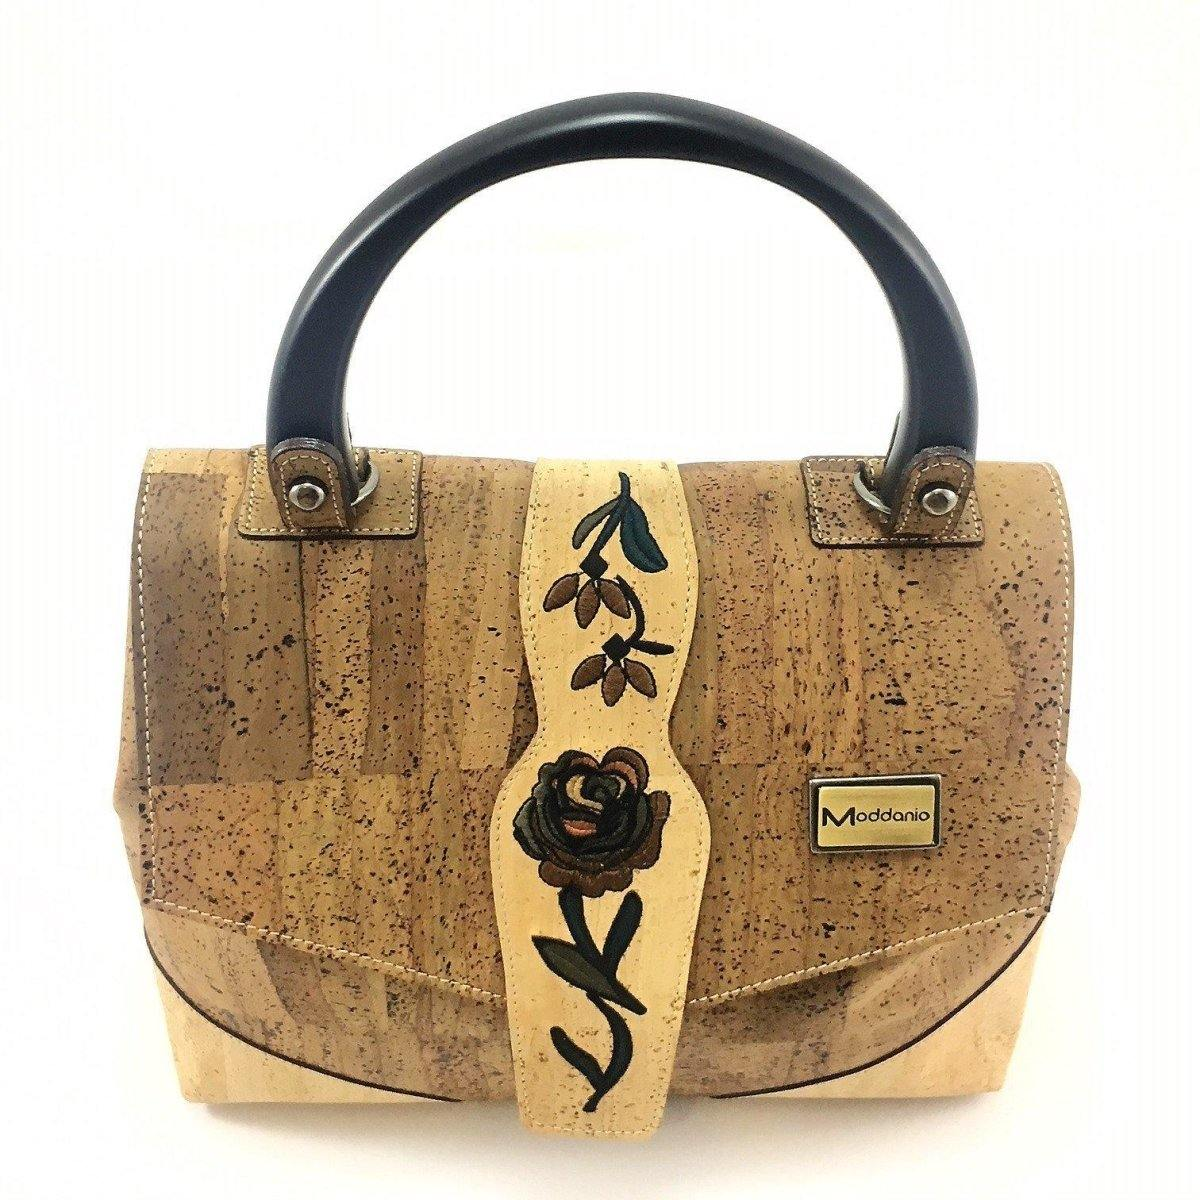 Cork Handbag Mayfair Limited Edition - Moddanio